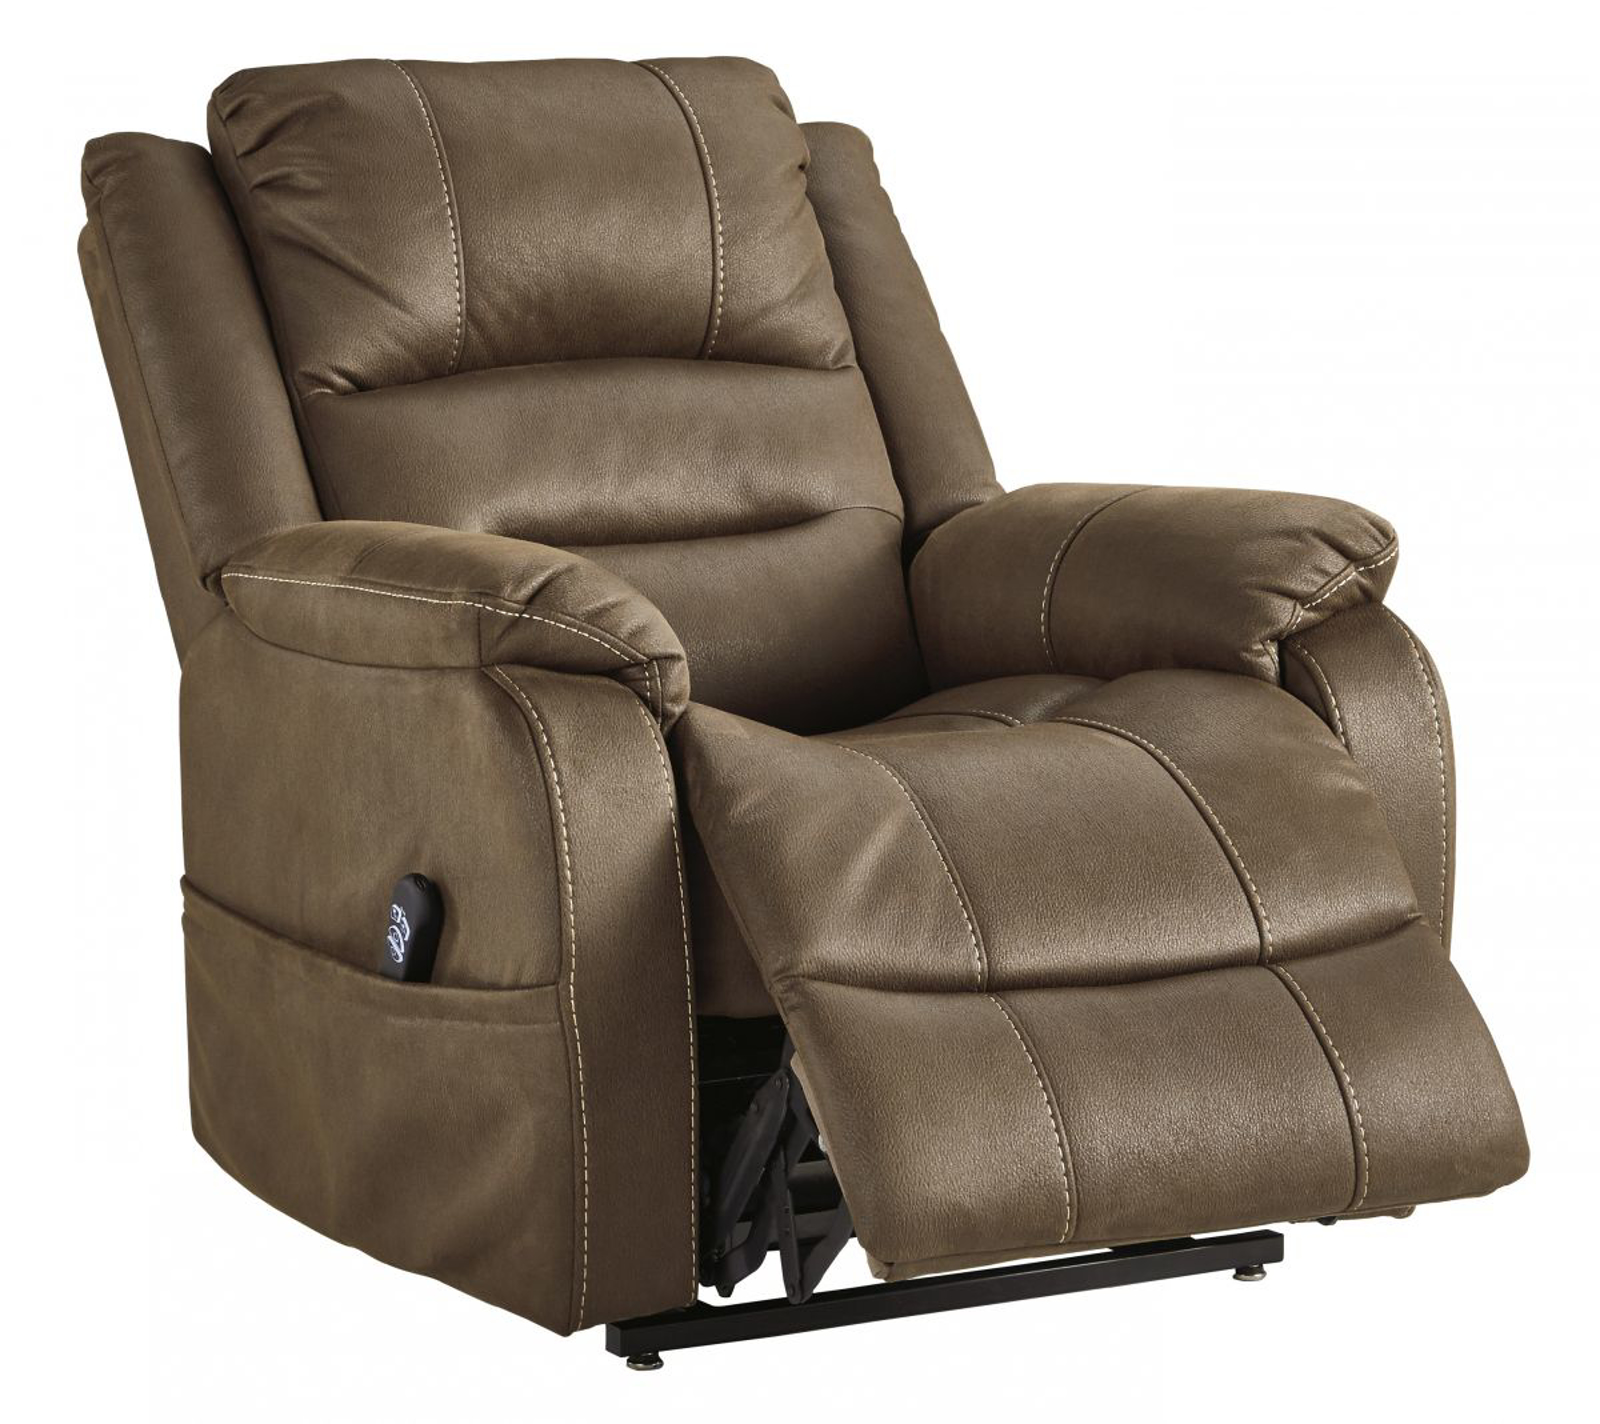 Picture of Whitehill Power Recliner